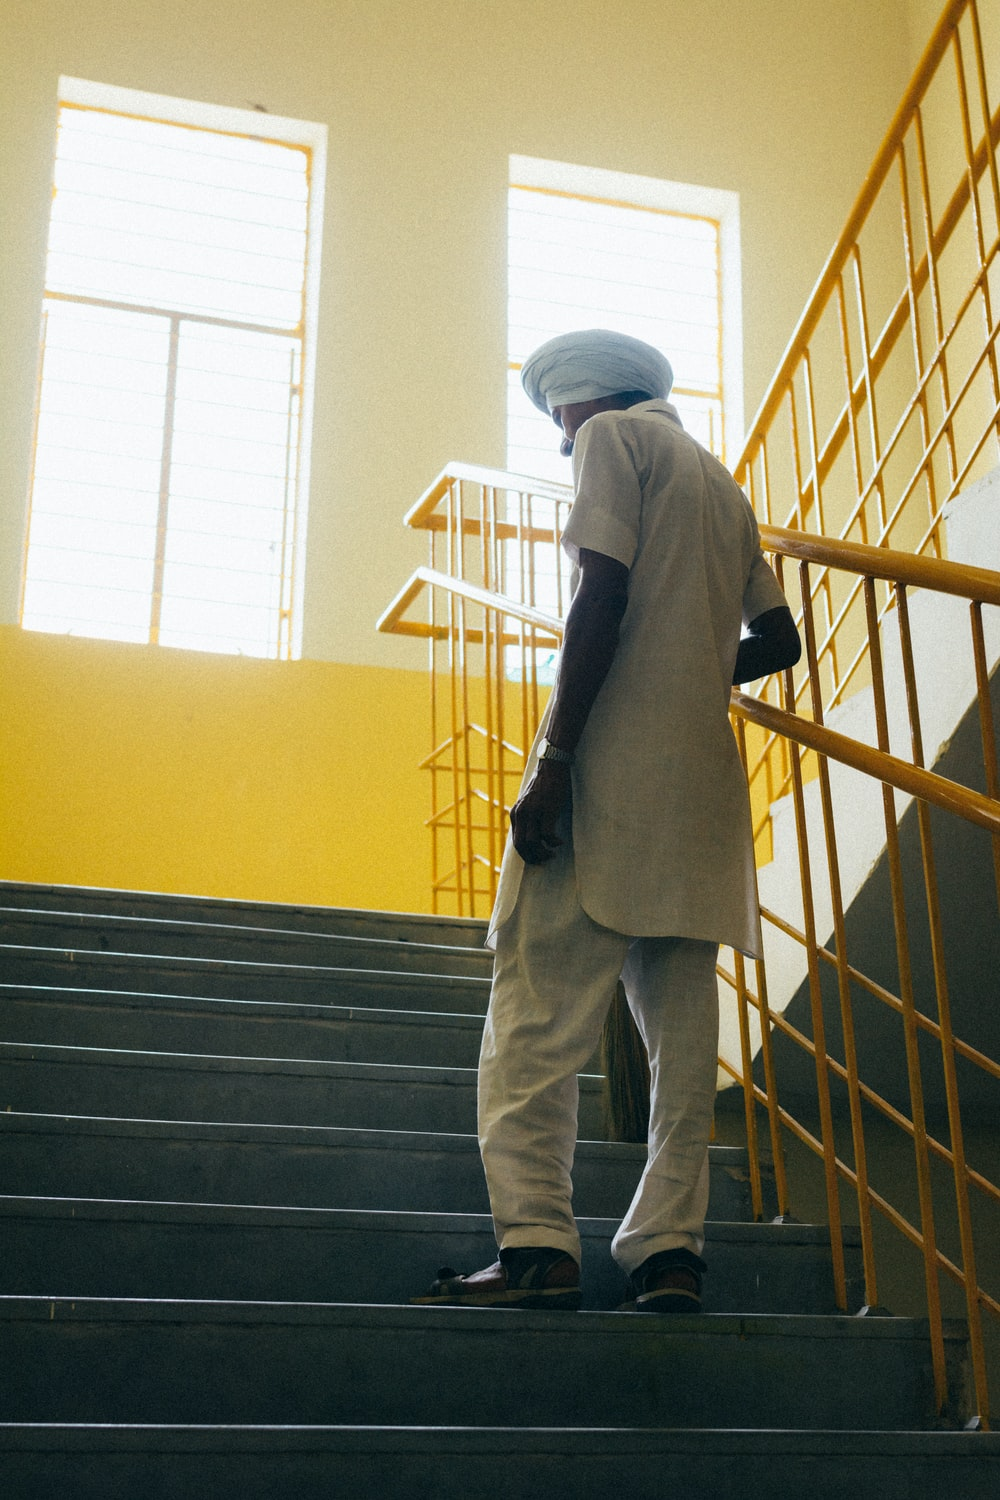 man in black jacket and gray pants standing on yellow staircase